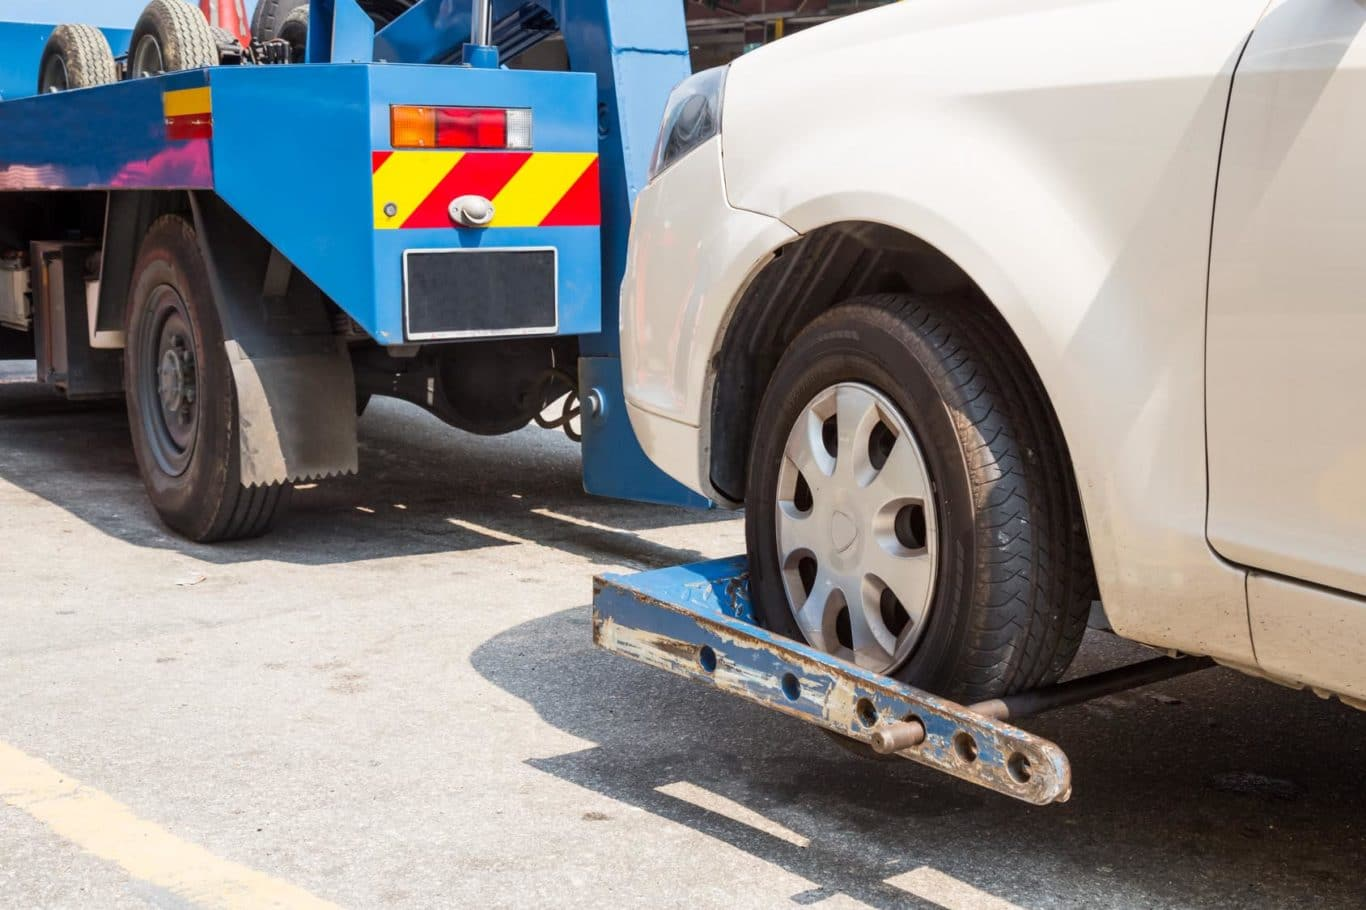 Greenore expert Car Towing services